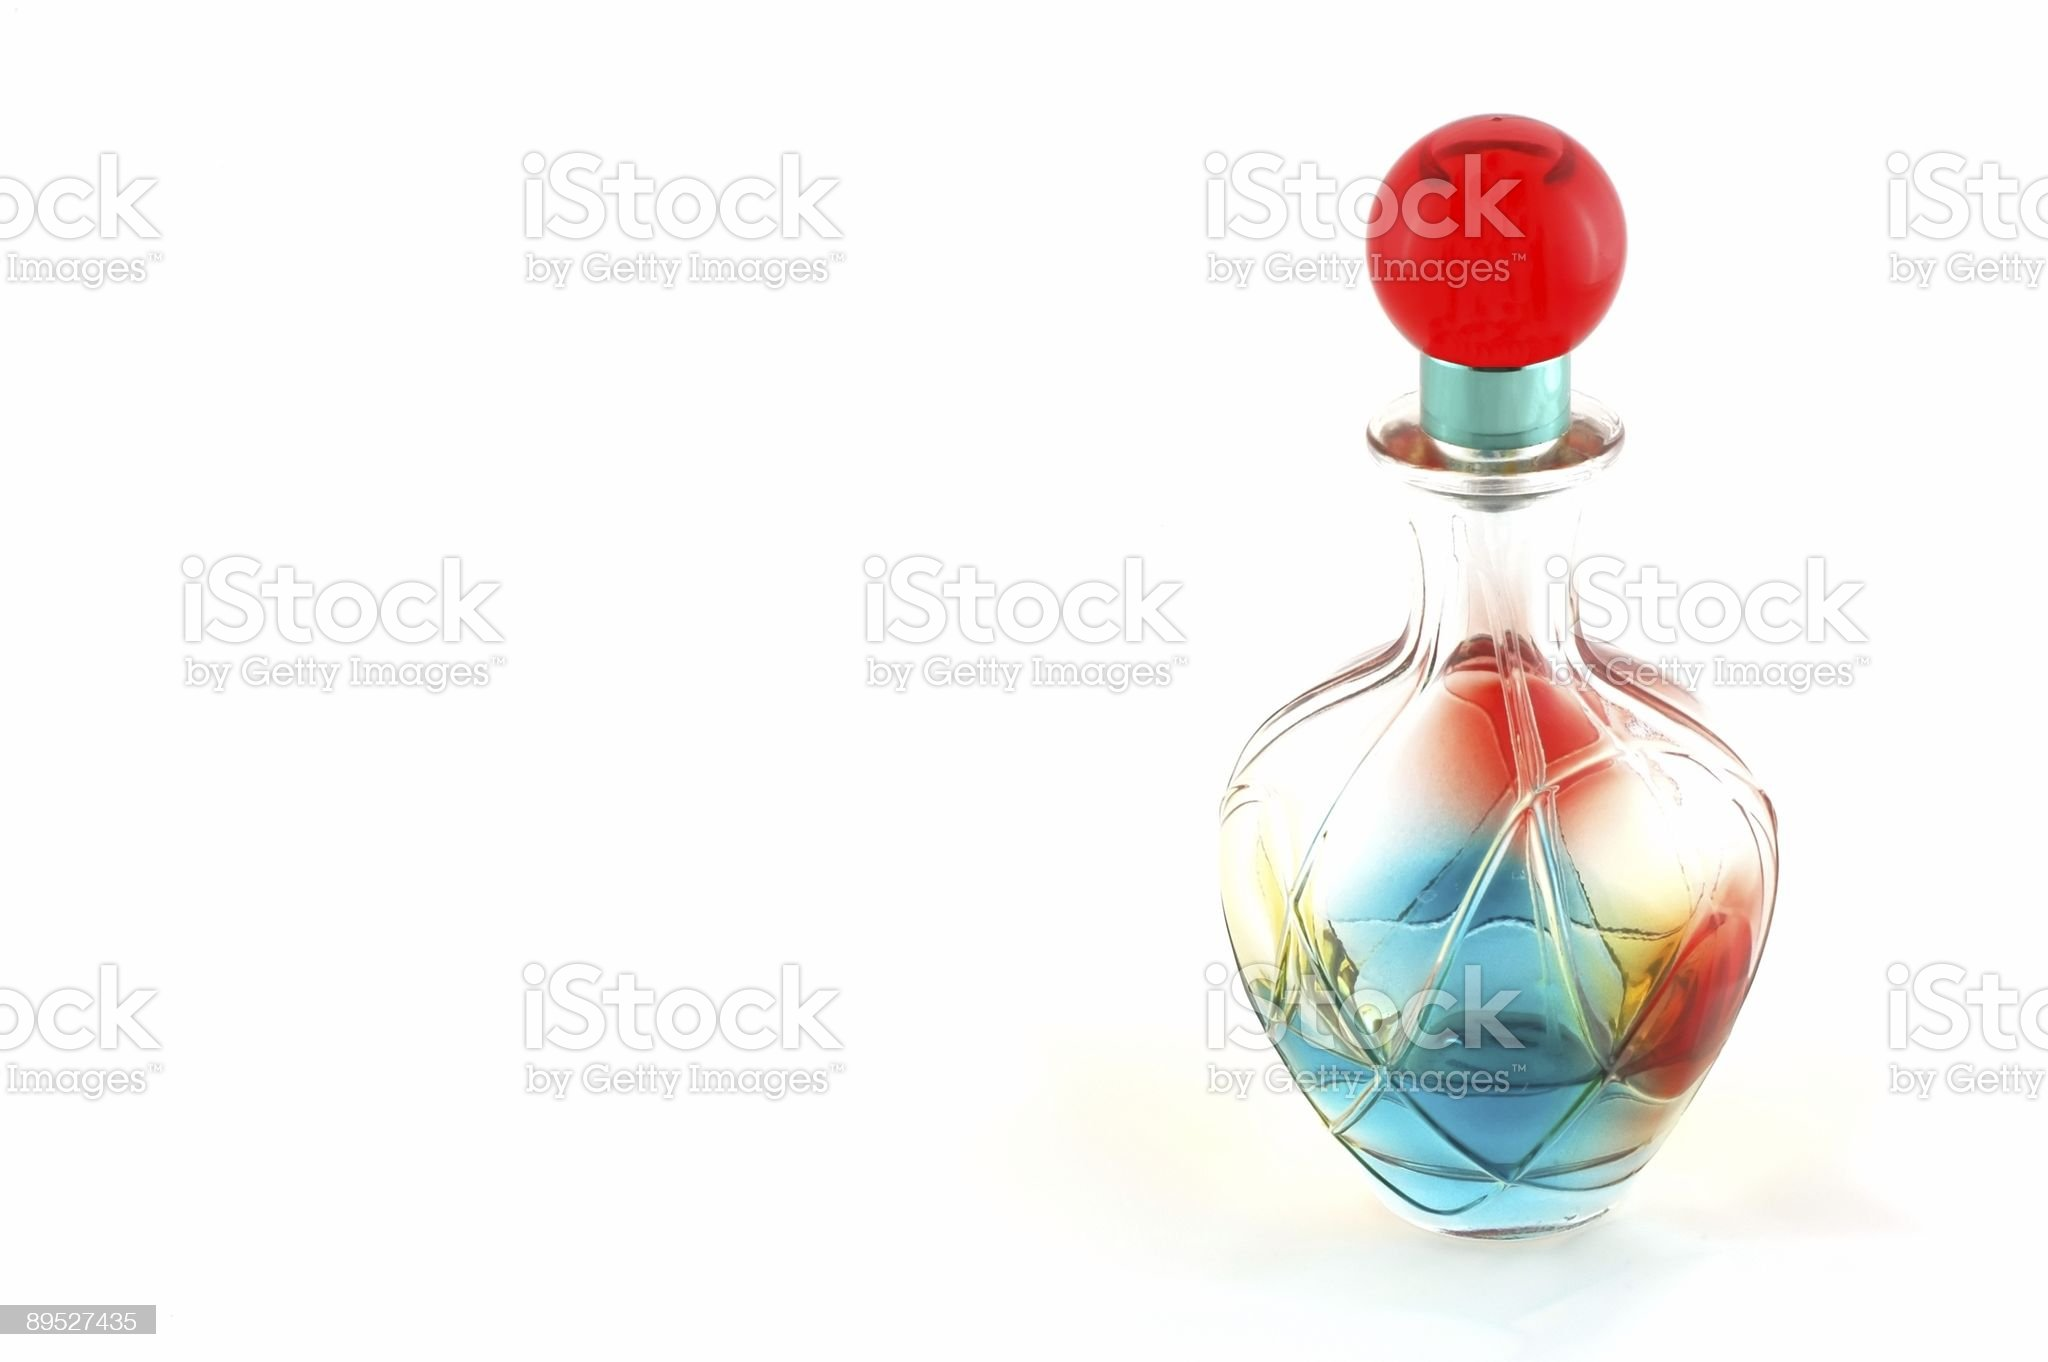 colored bottle of perfume over white background royalty-free stock photo